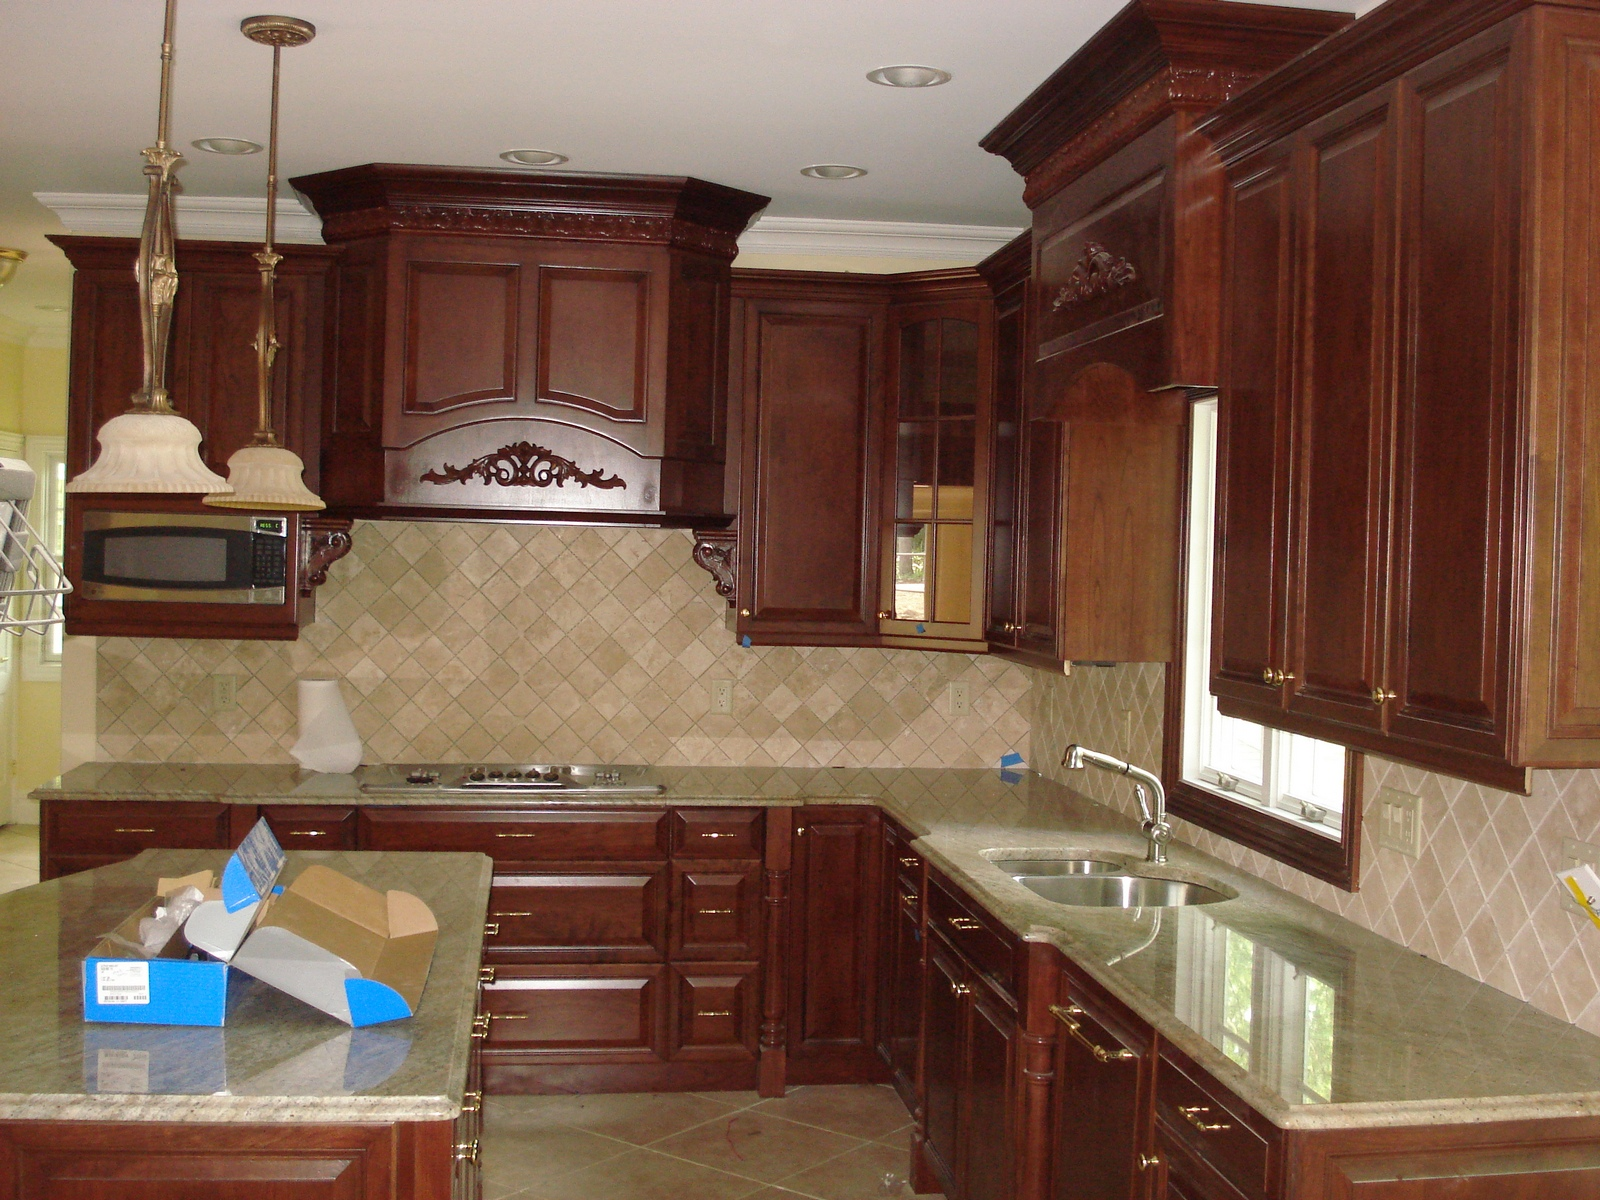 Marvelous Kitchen Cabintes By Crown Molding NJ (13) Kitchen Cabinets KC6